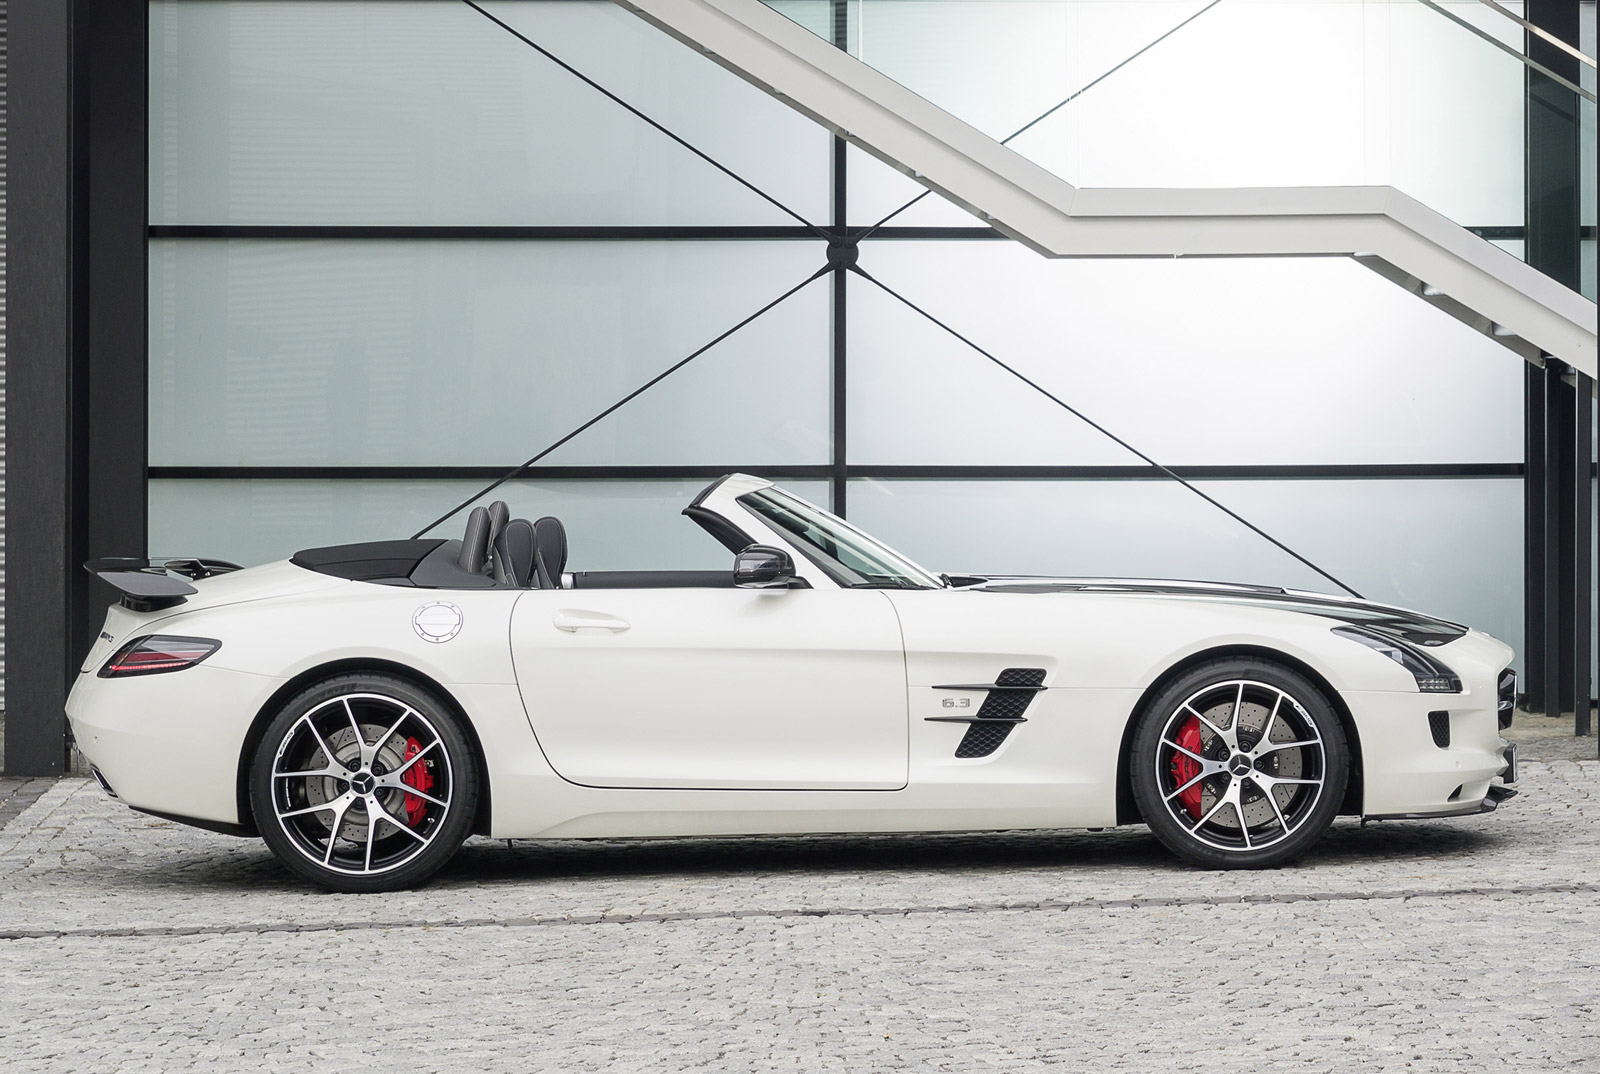 2015 mercedes benz sls amg gt review ratings specs autos